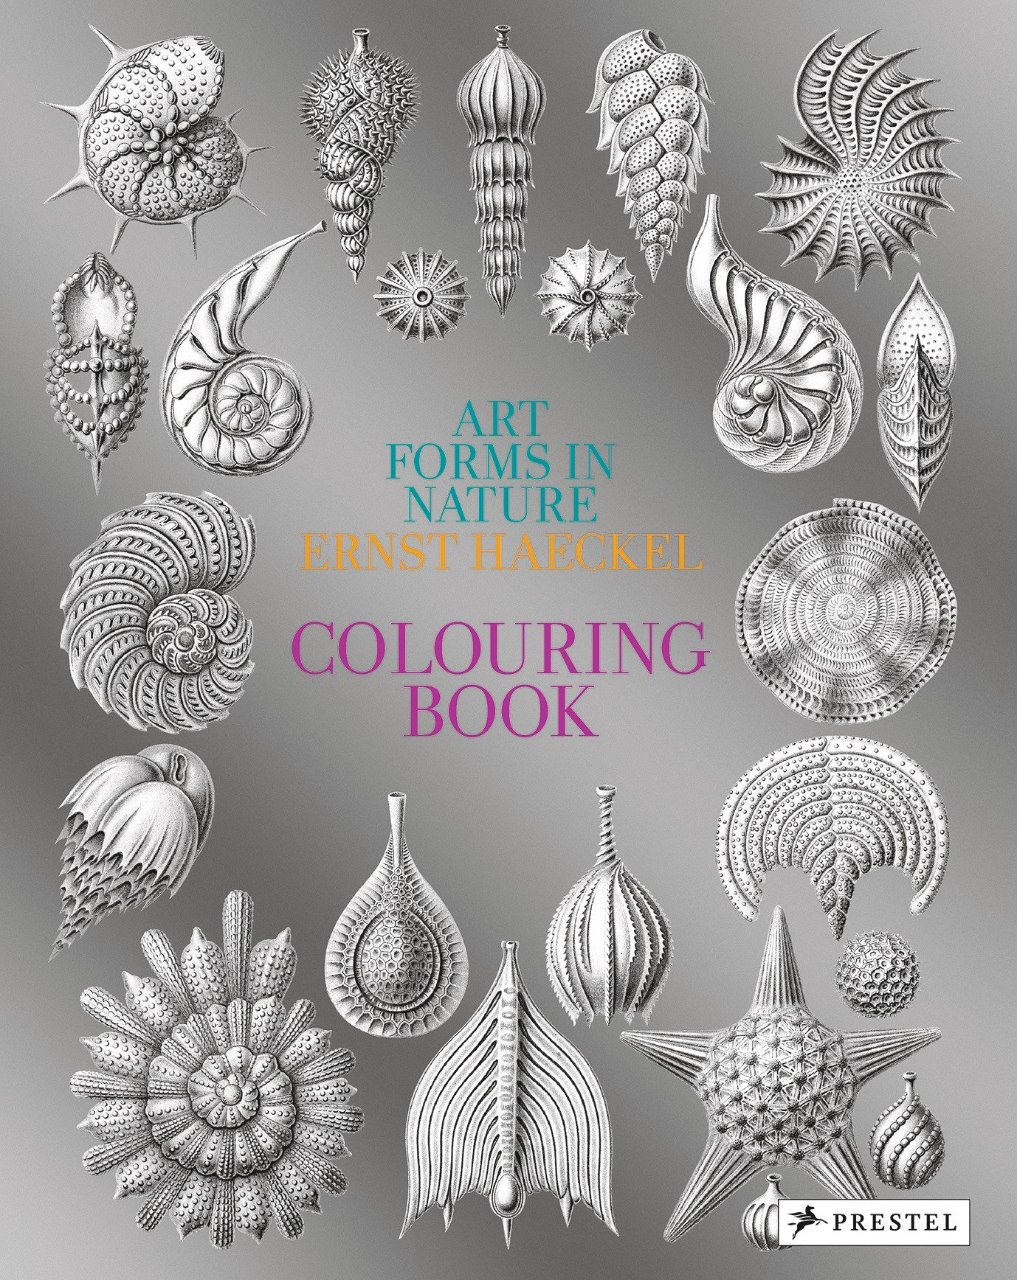 Art Forms In Nature A Colouring Book Of Ernst Haeckel's Prints